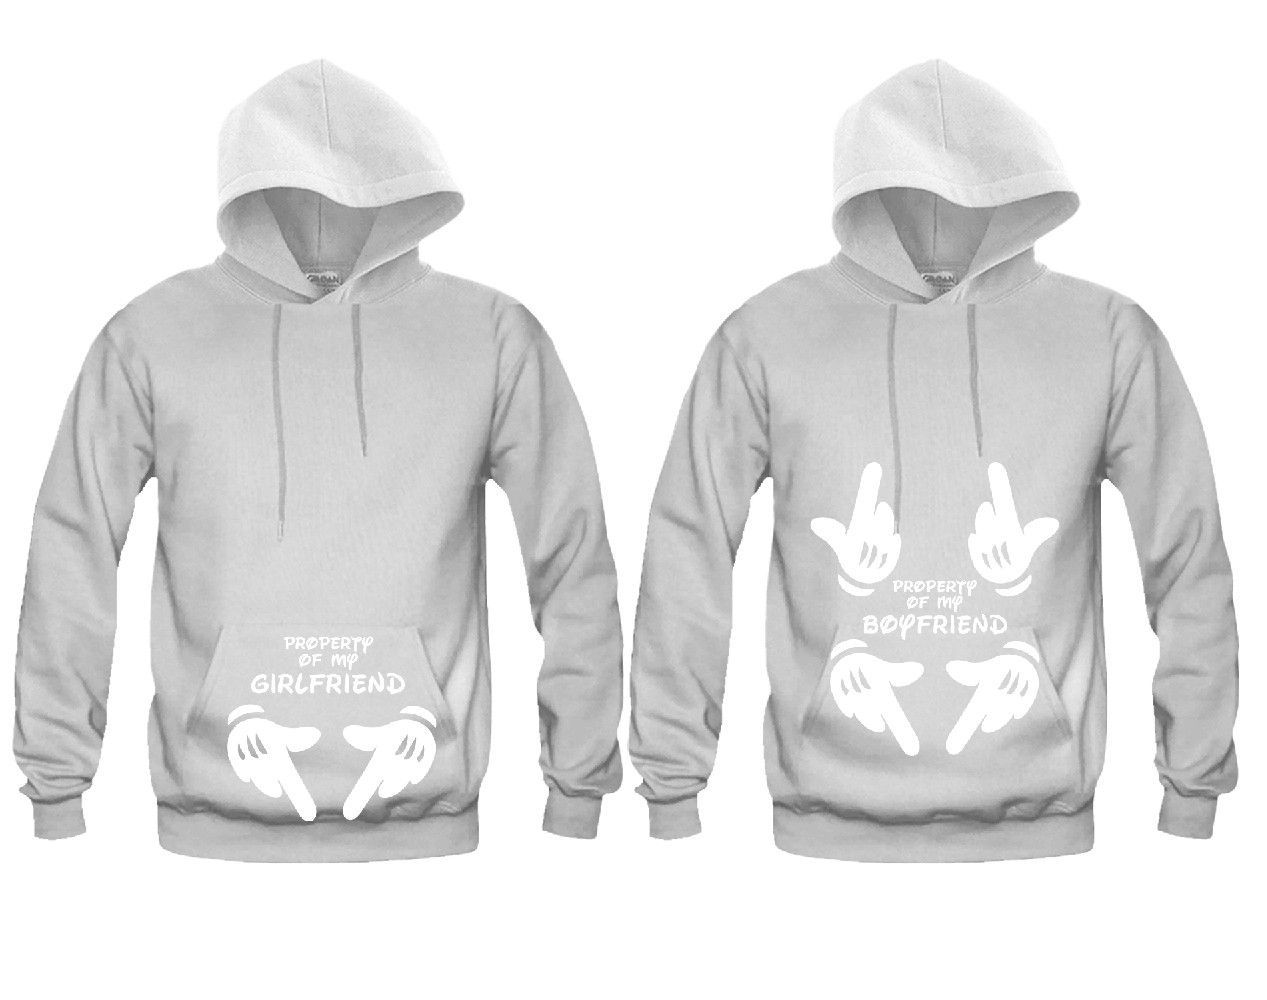 The Boss The Real Boss Hoodie Couple Matching Hoody Gf Bf Gift Married Top Hood